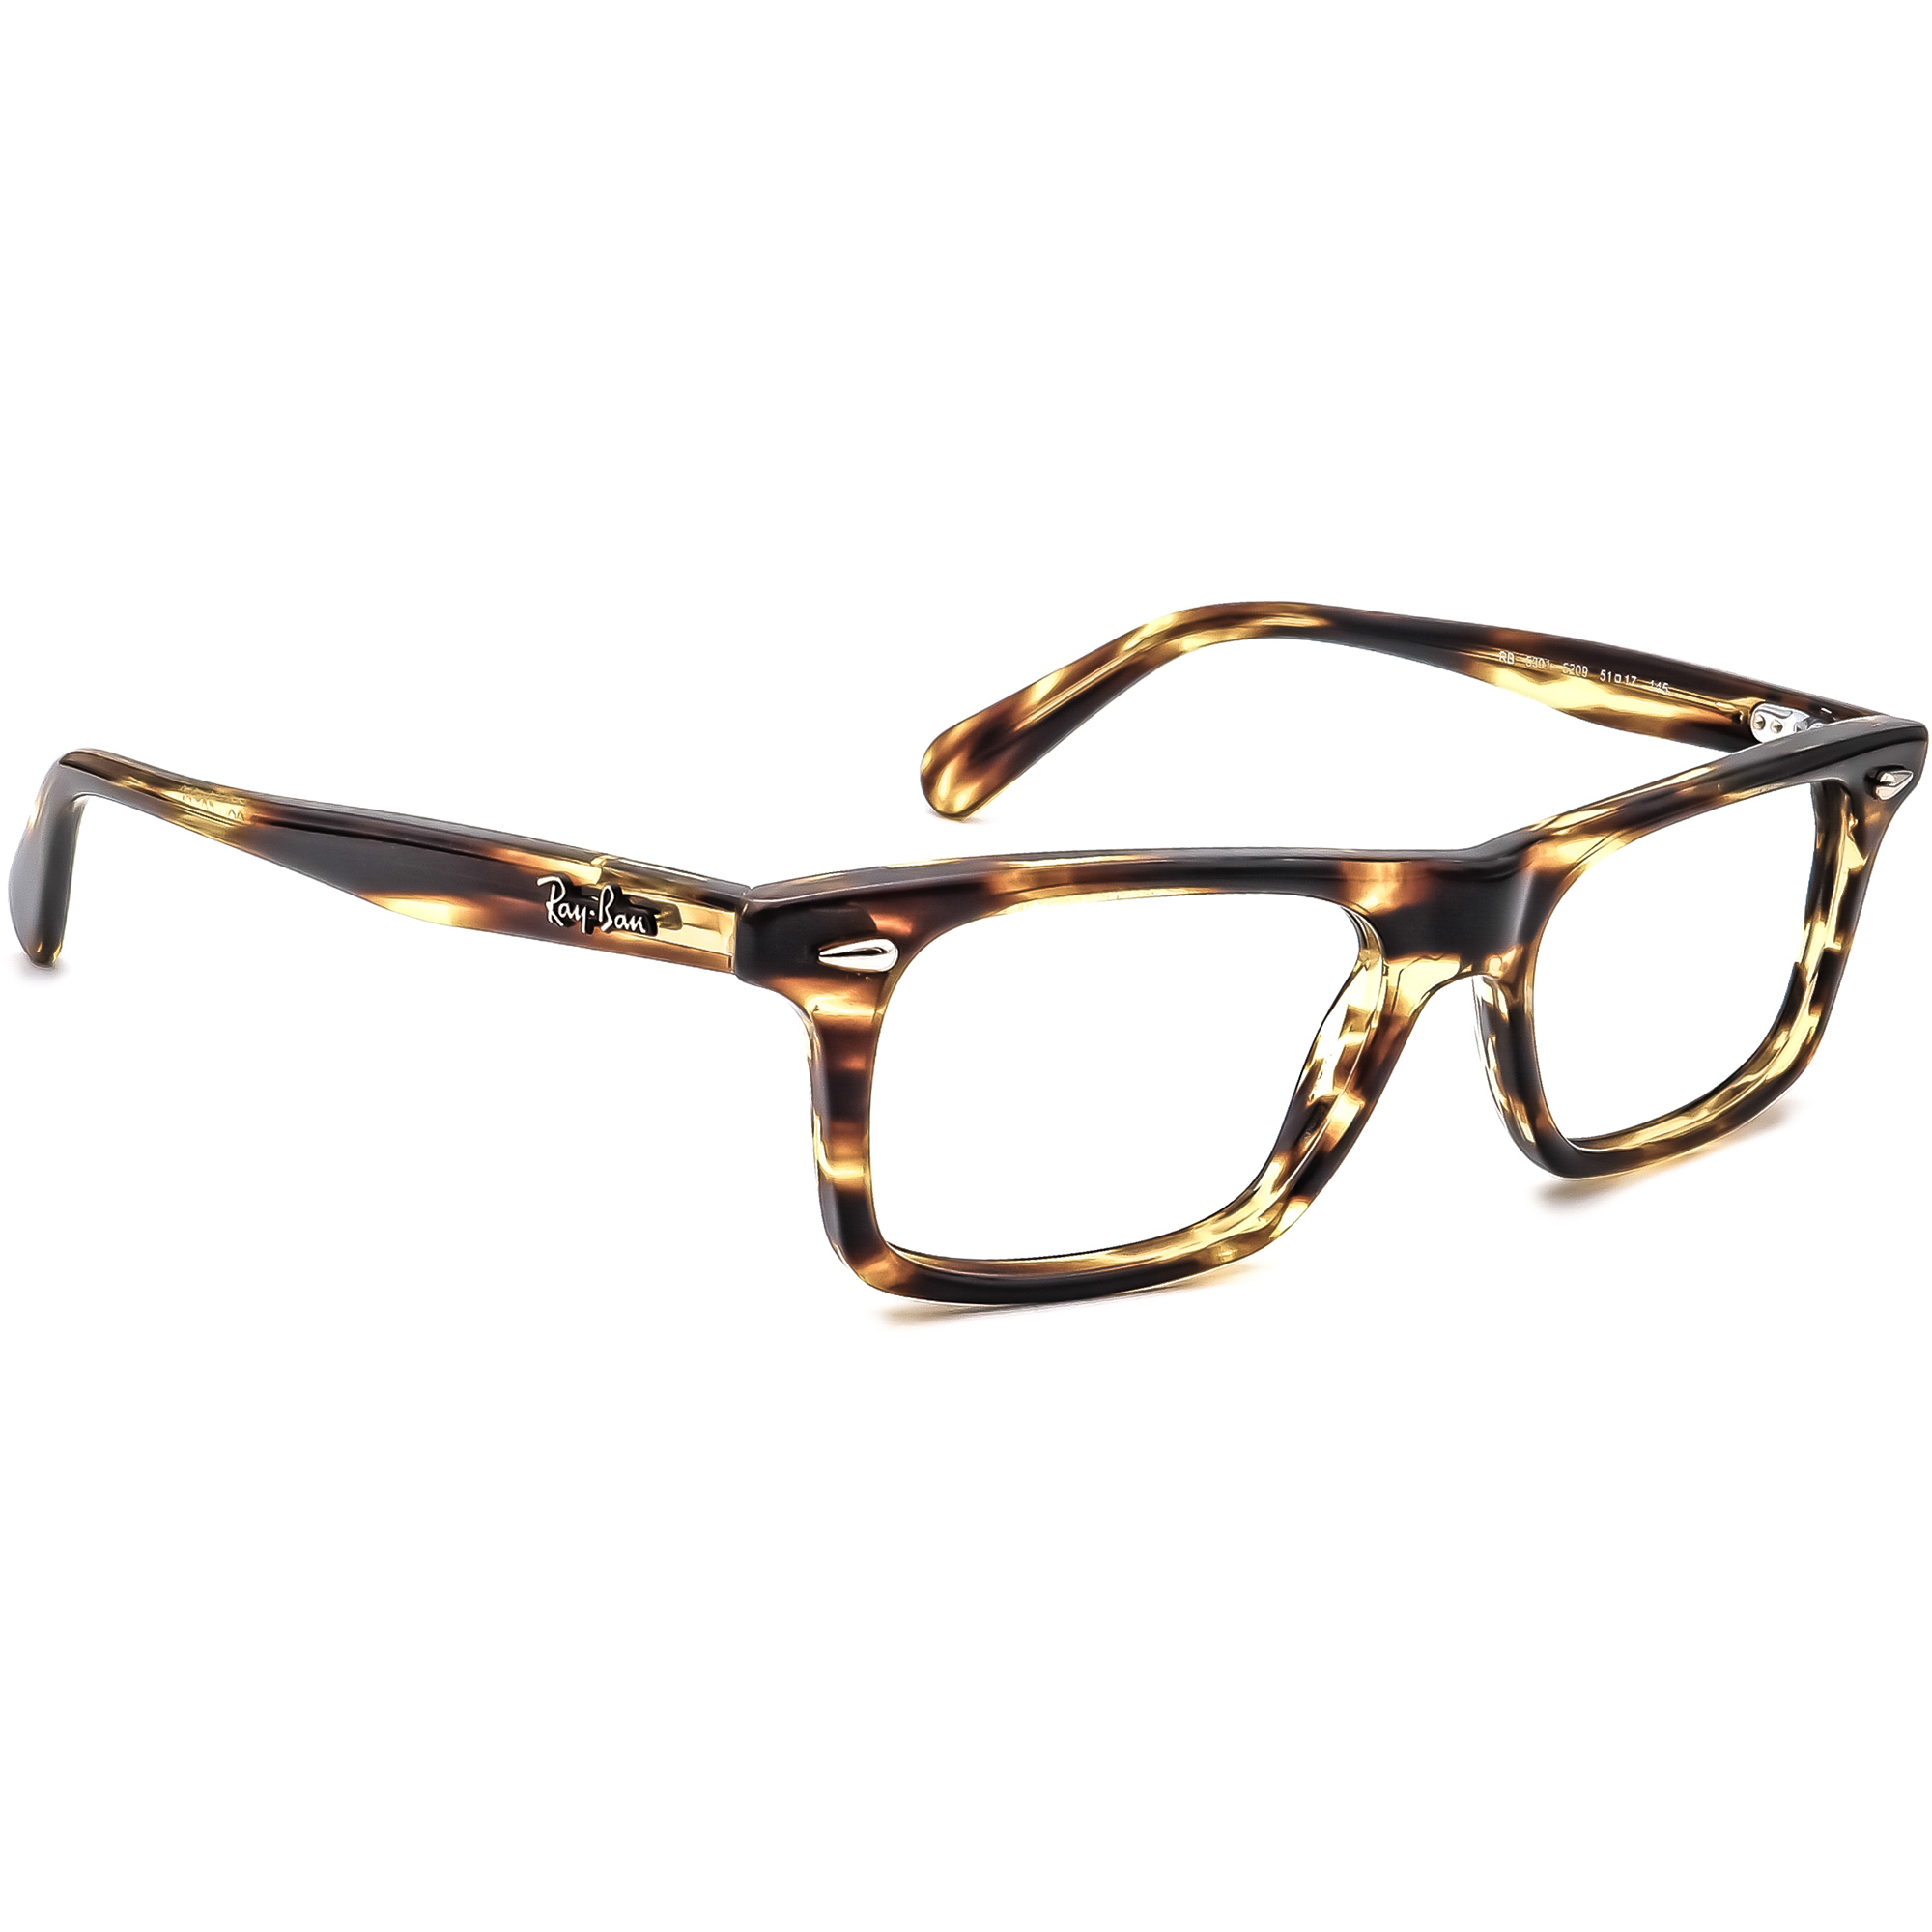 Ray-Ban RB 5301 5209 Legends Collection Eyeglasses